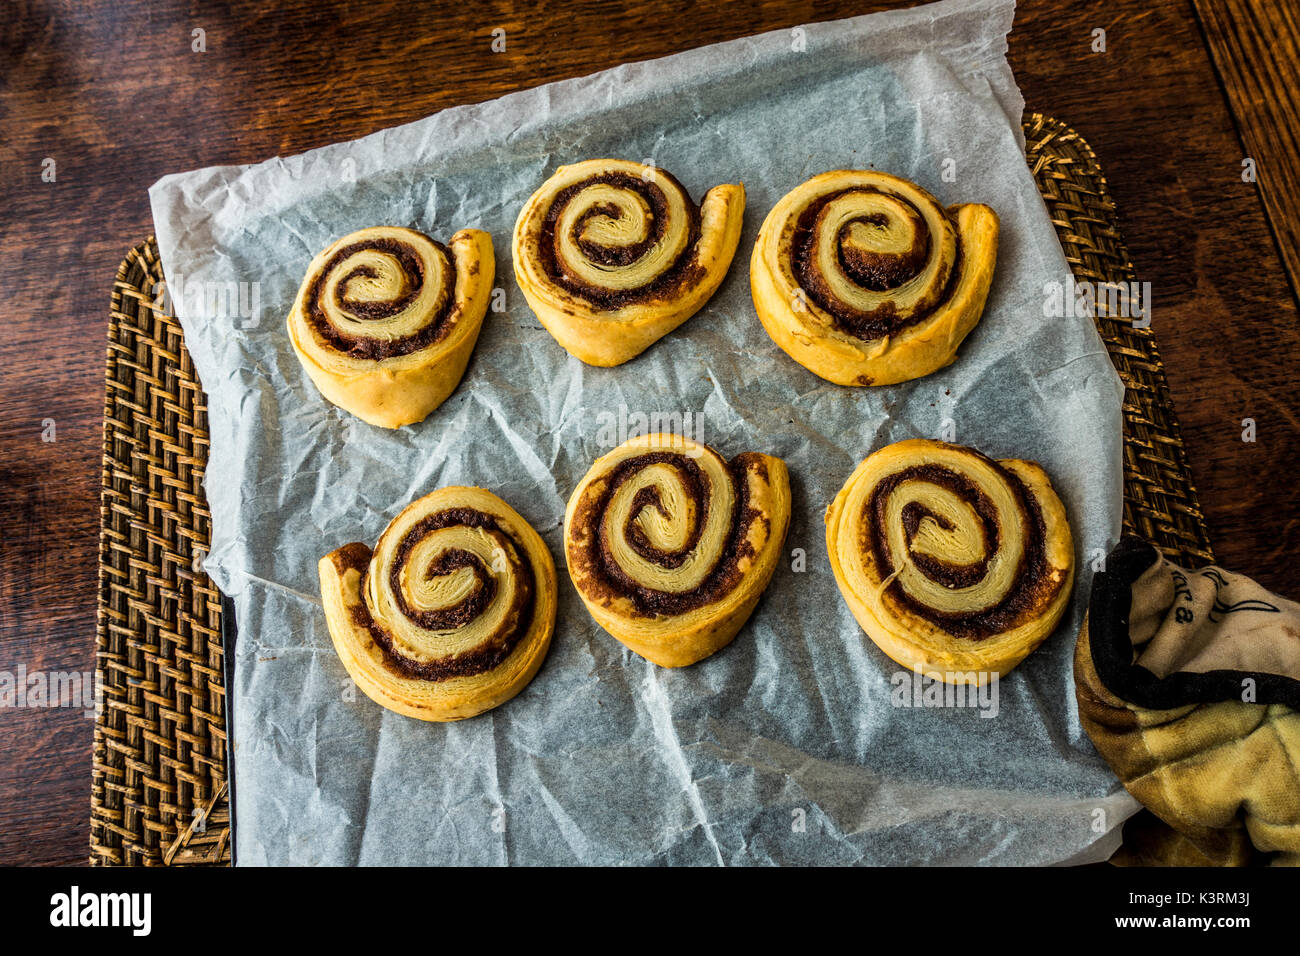 Hot, homemade, cinnamon pastry swirls, straight from the oven, on a grease proof paper tray, held by a padded glove. England, UK. - Stock Image